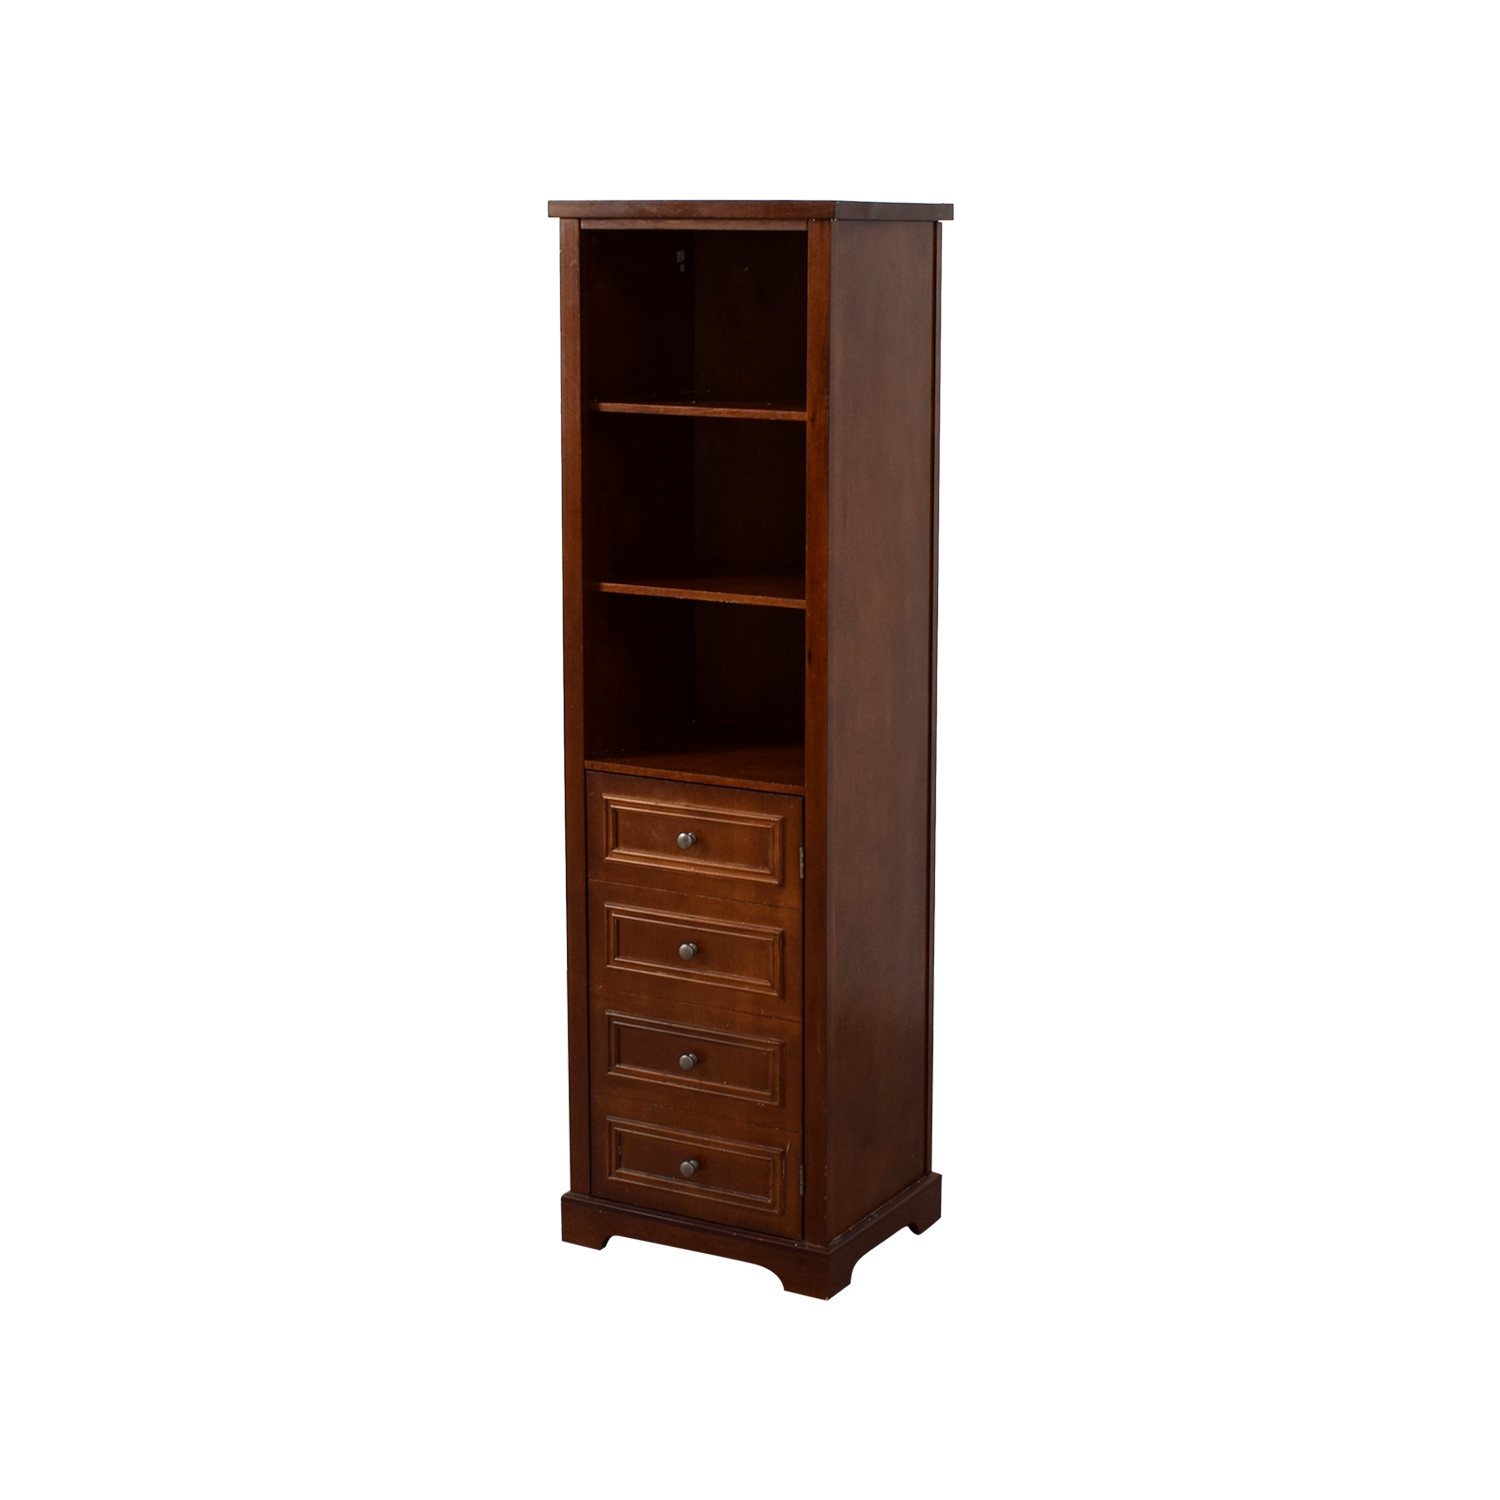 Tall Five Shelf Bookcase nj